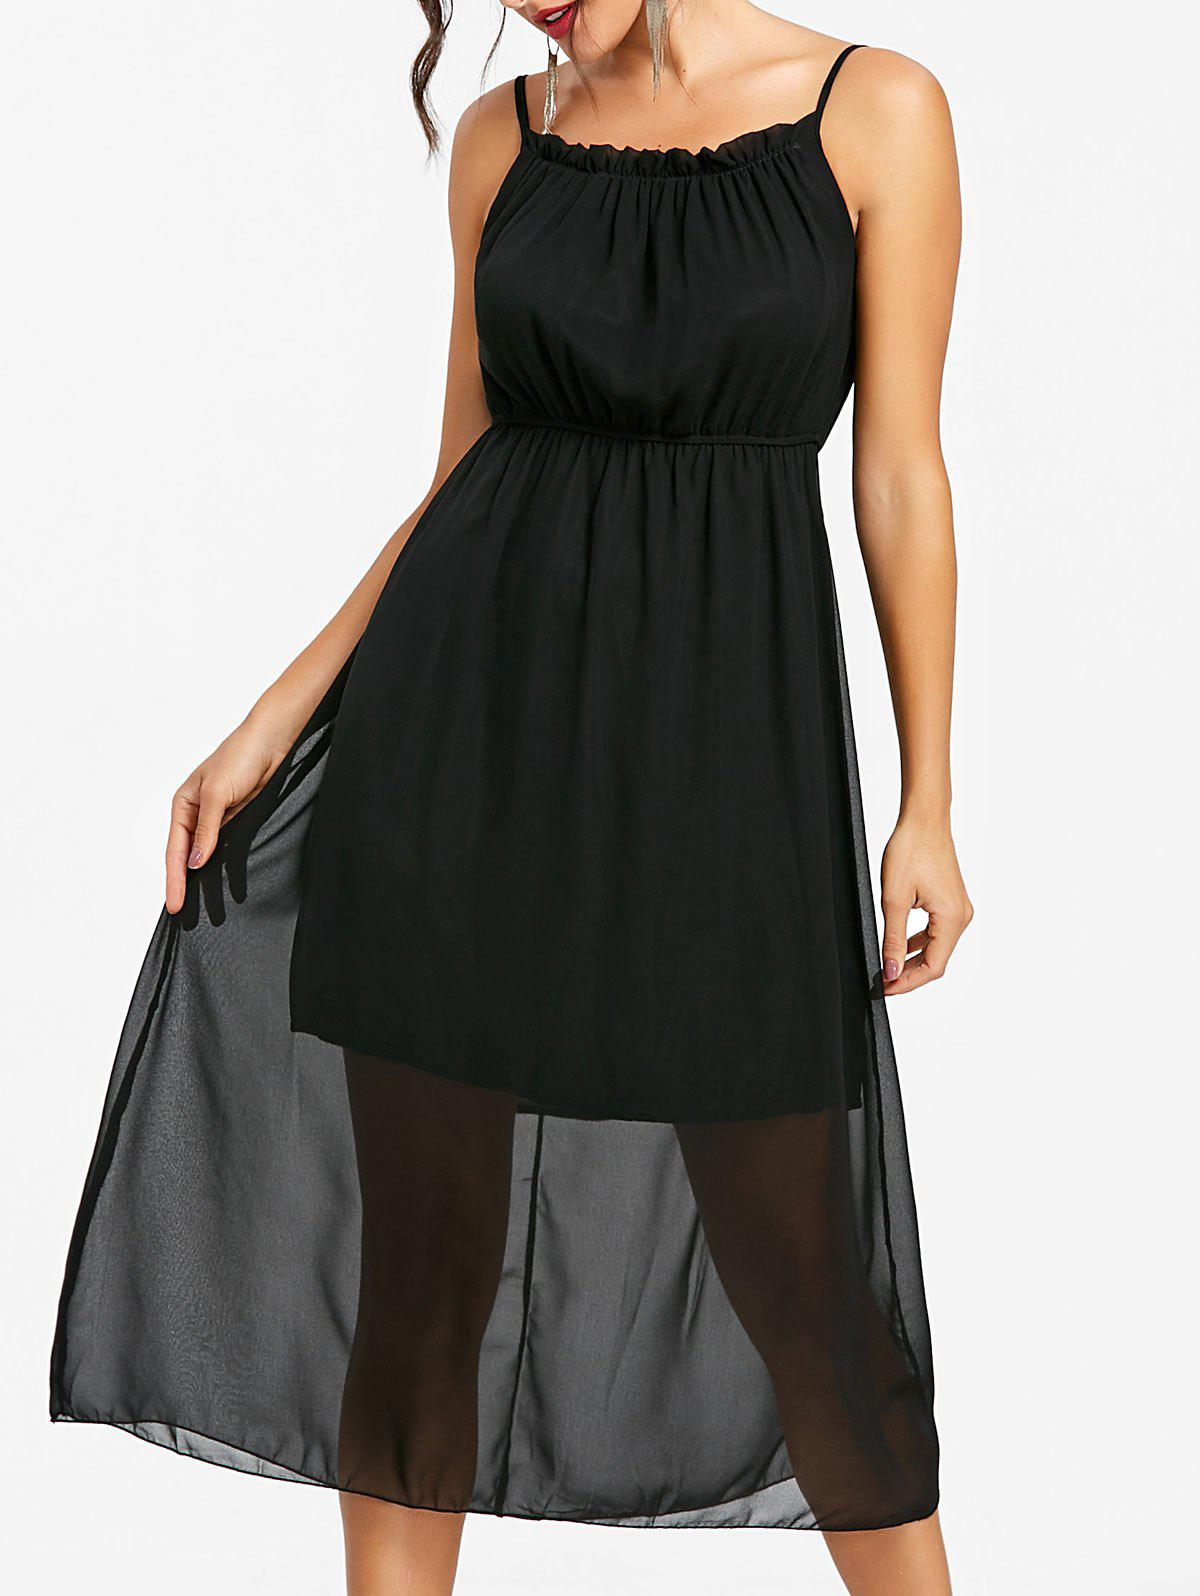 New High Waisted Chiffon Slip Dress